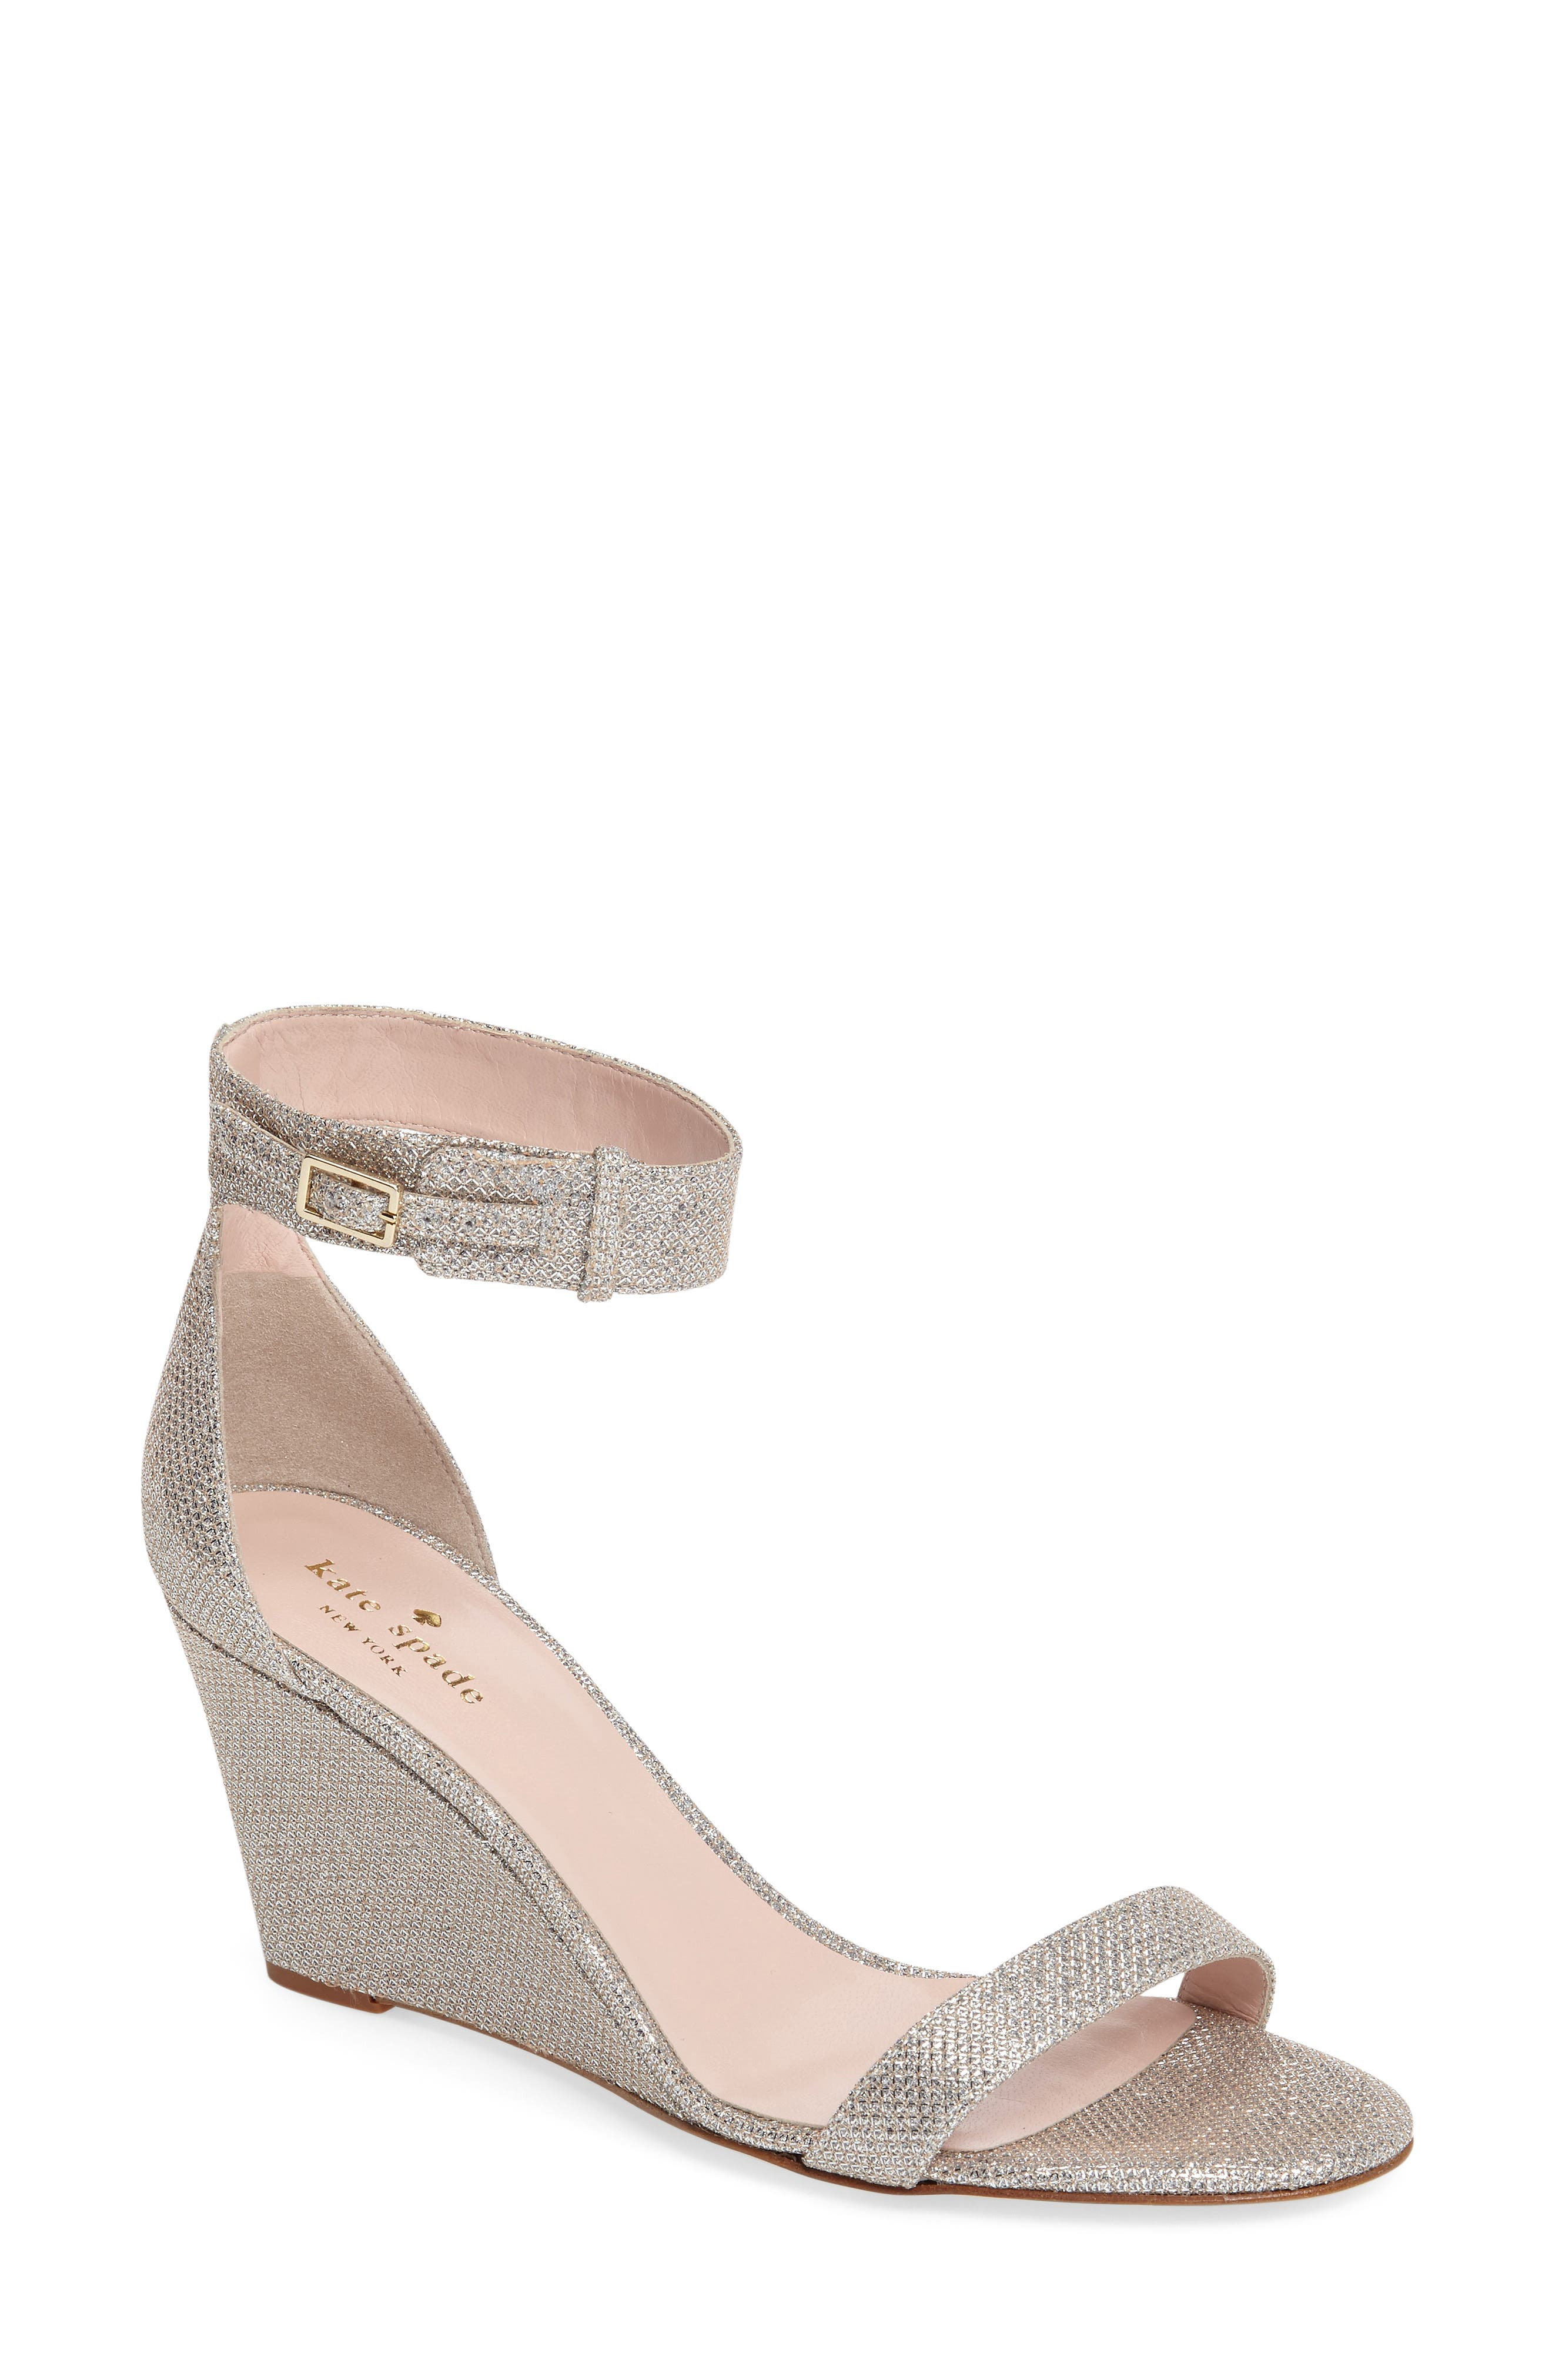 'ronia' wedge sandal,                         Main,                         color, Silver/ Natural